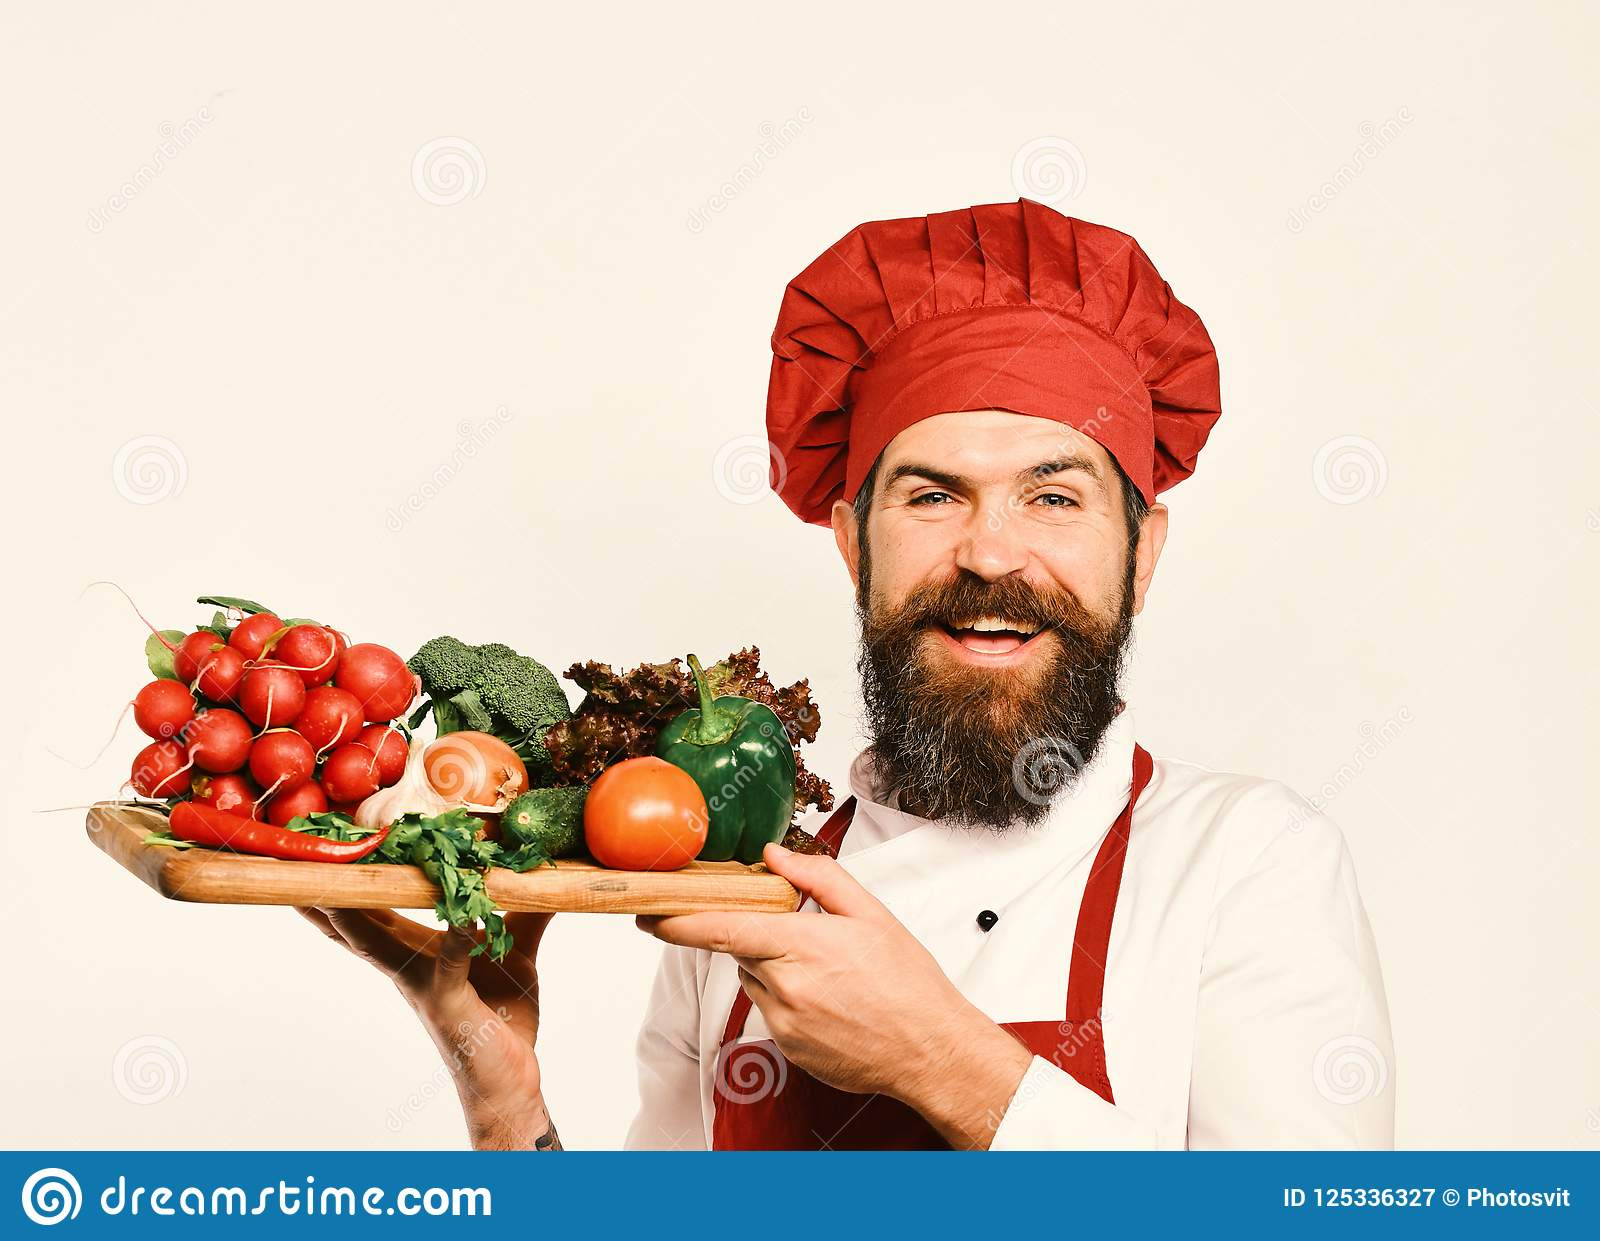 Cook with cheerful face in burgundy uniform holds salad ingredients. Chef holds board with fresh vegetables. Cooking and